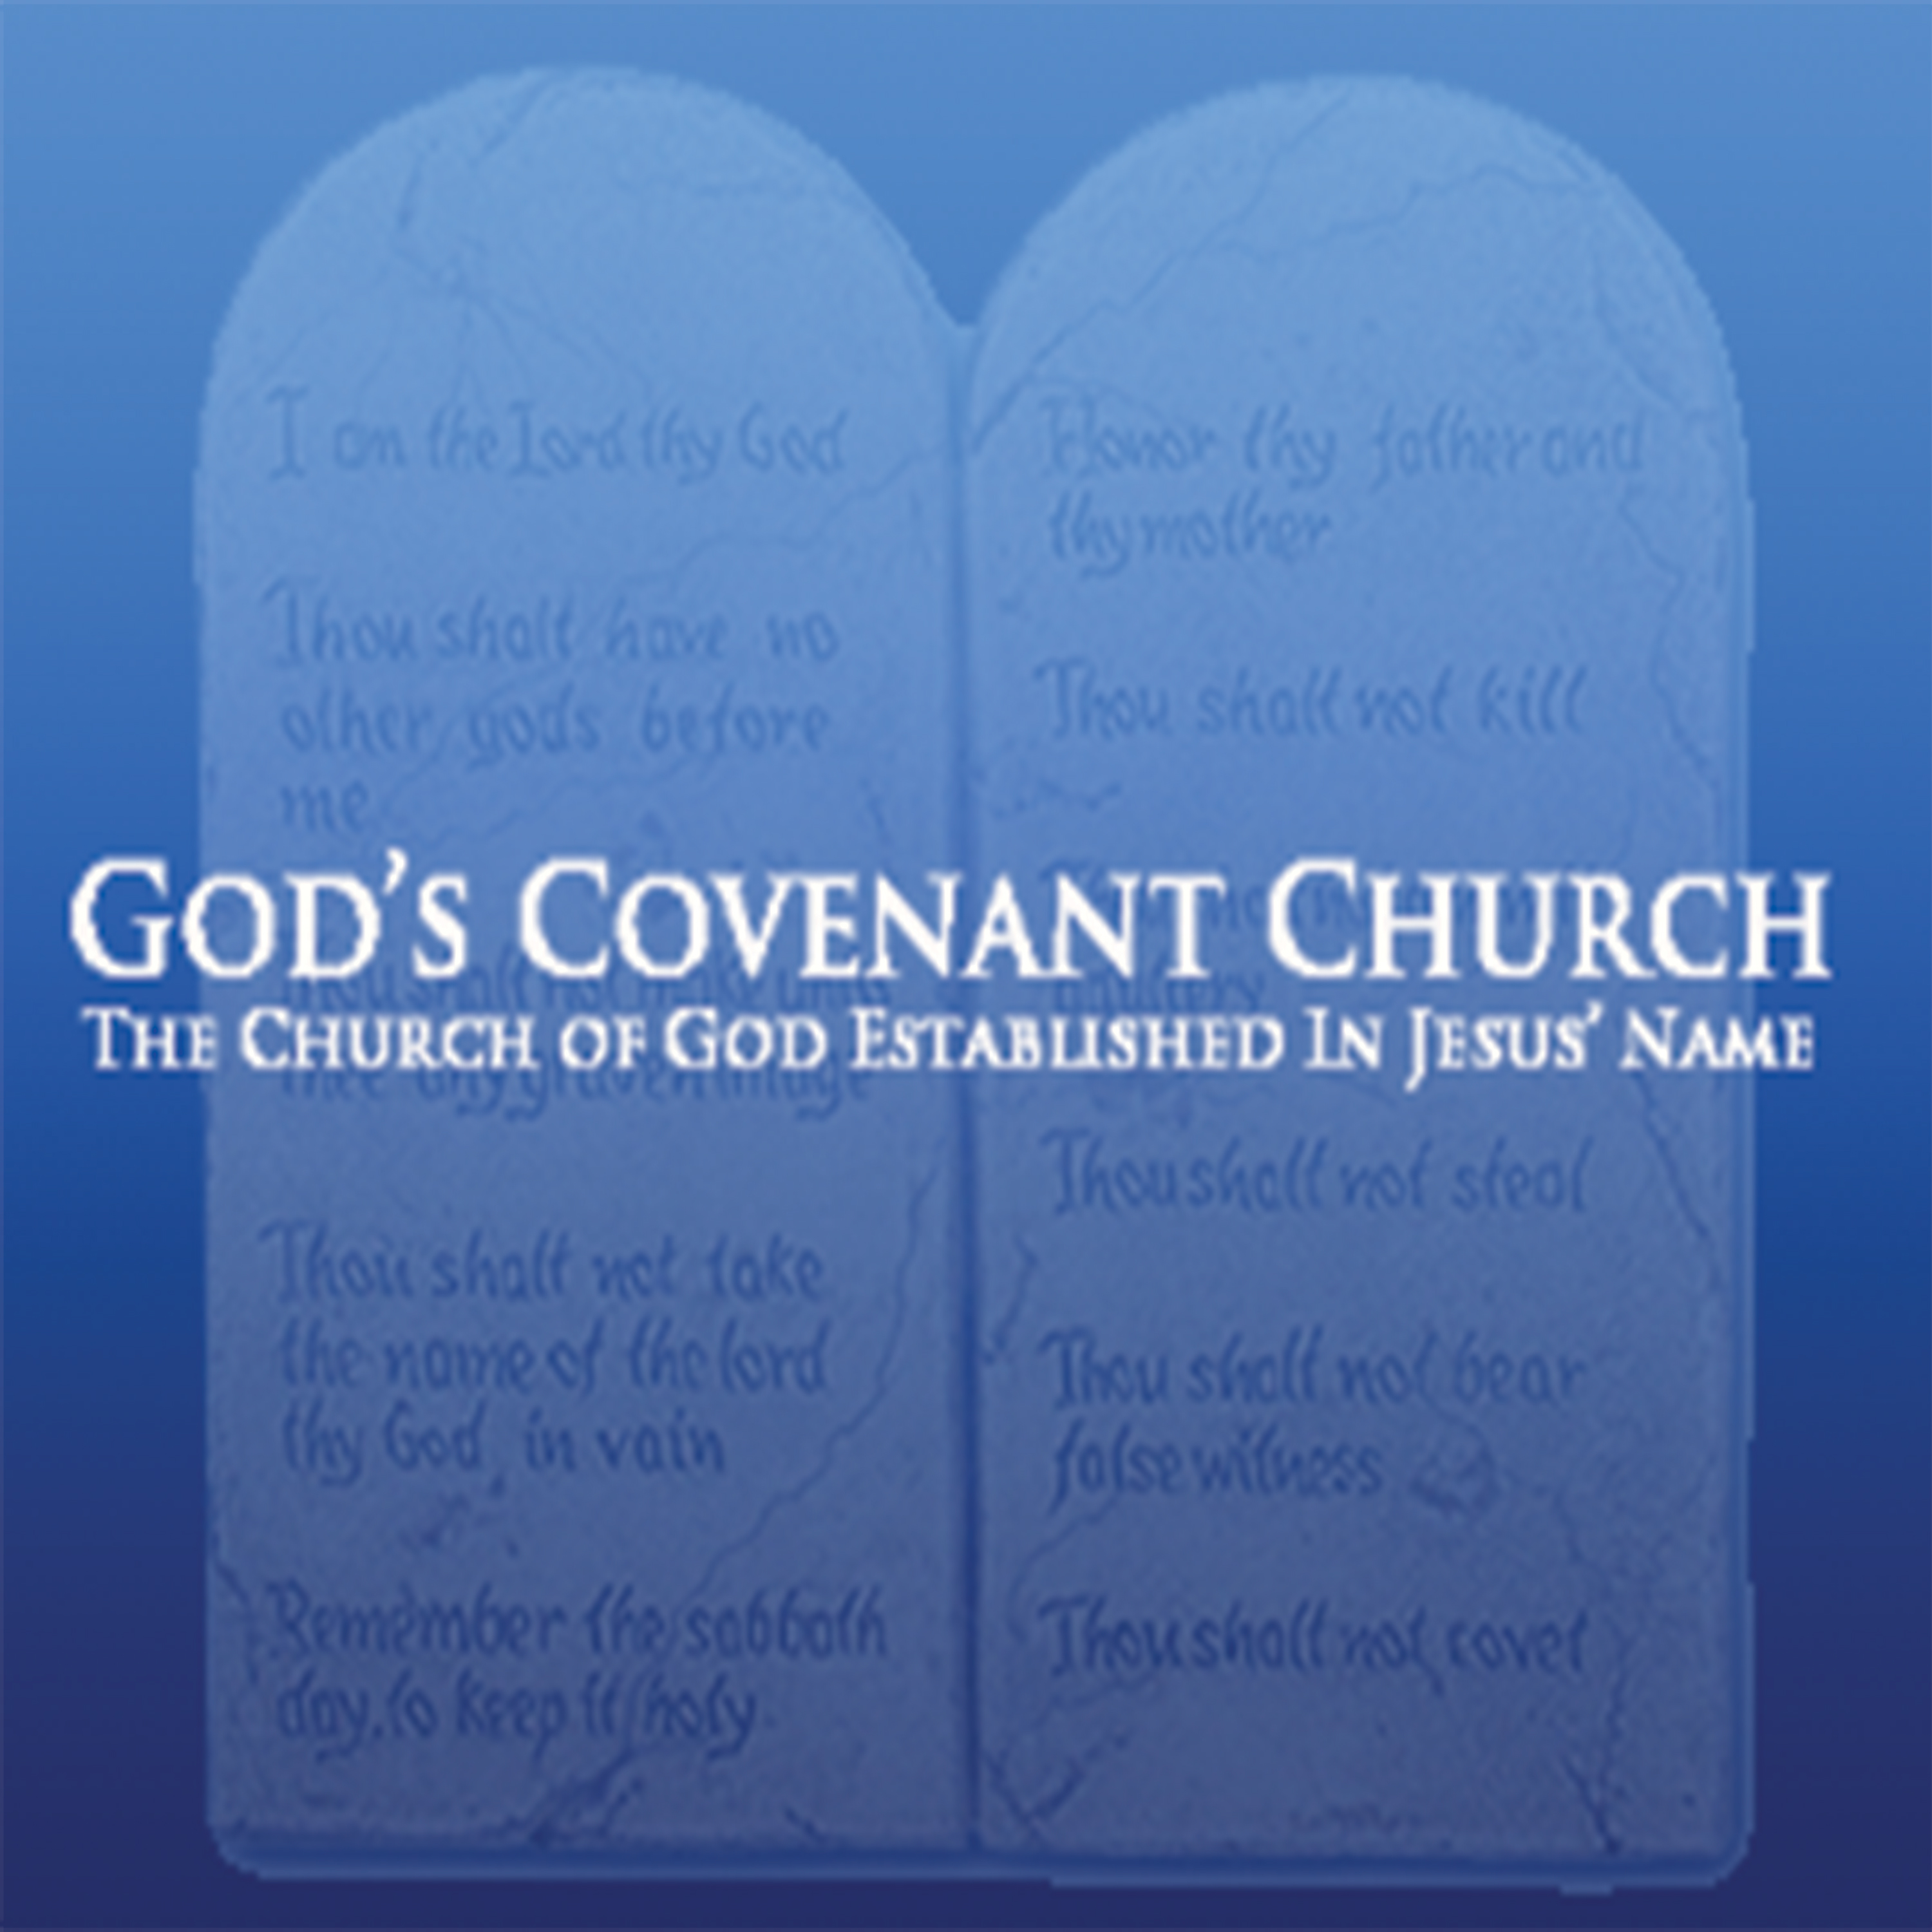 God's Covenant Church